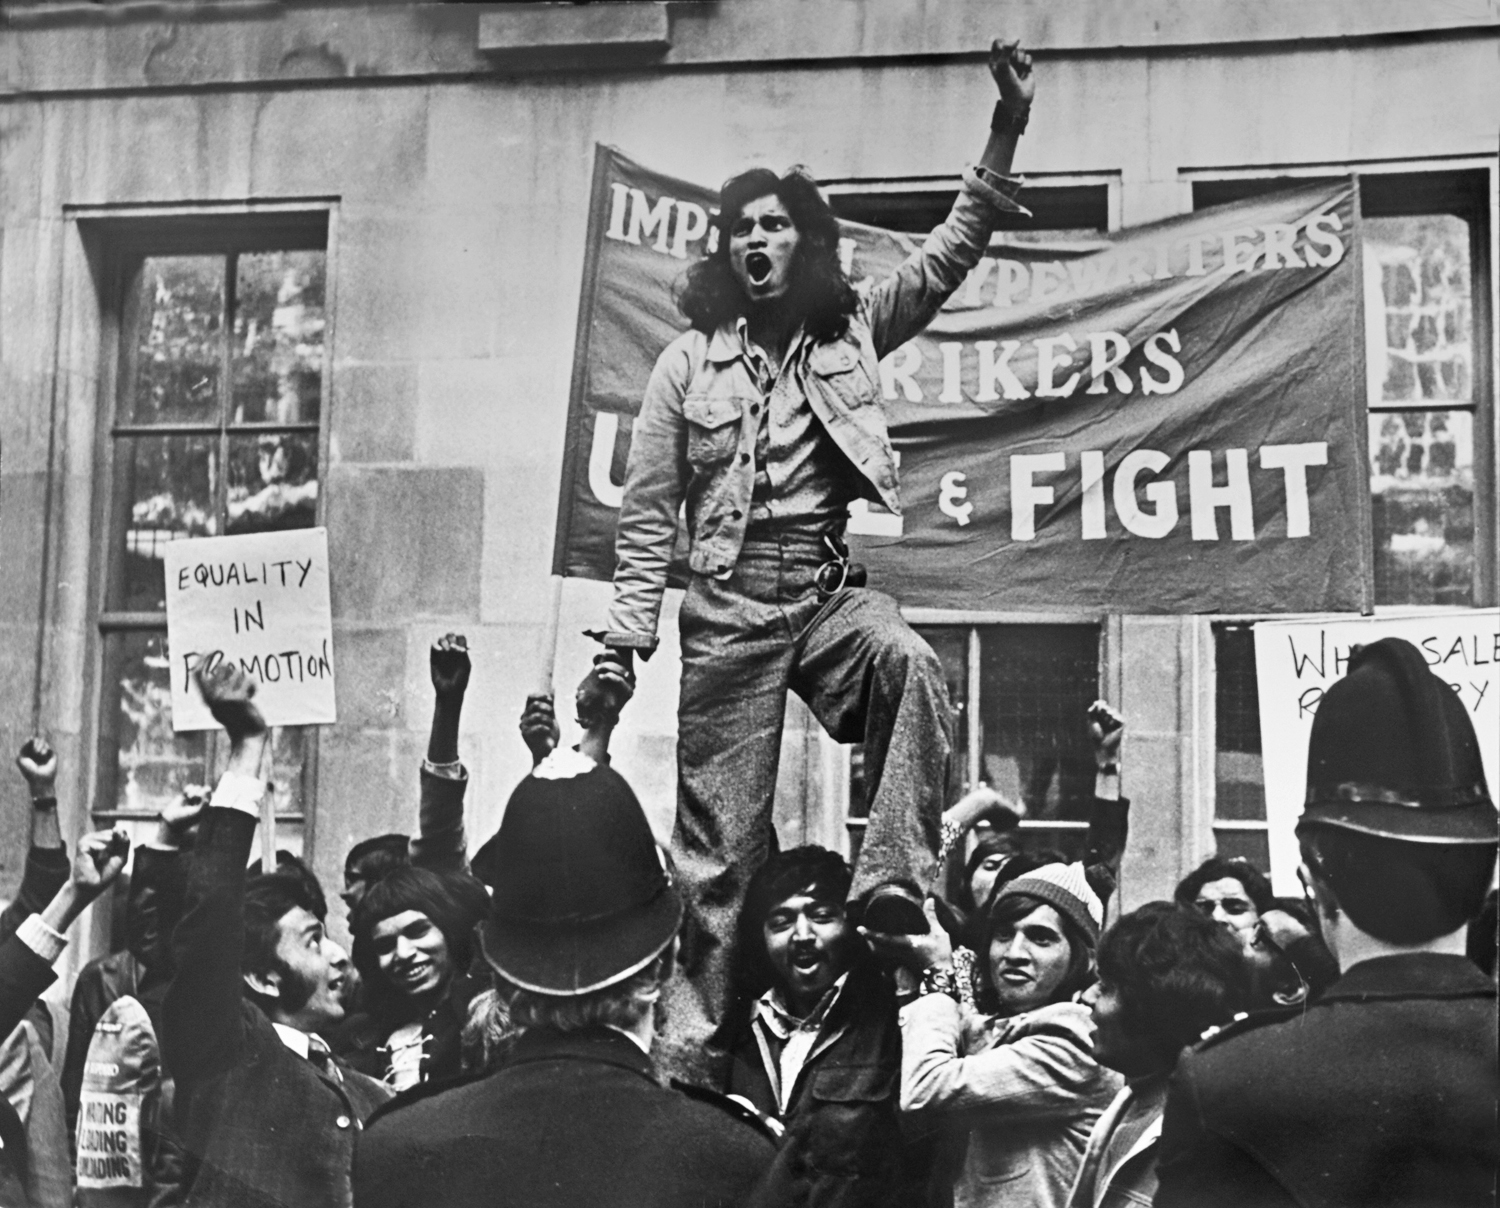 Strikers demonstrate in Smith Square, London, 1972.